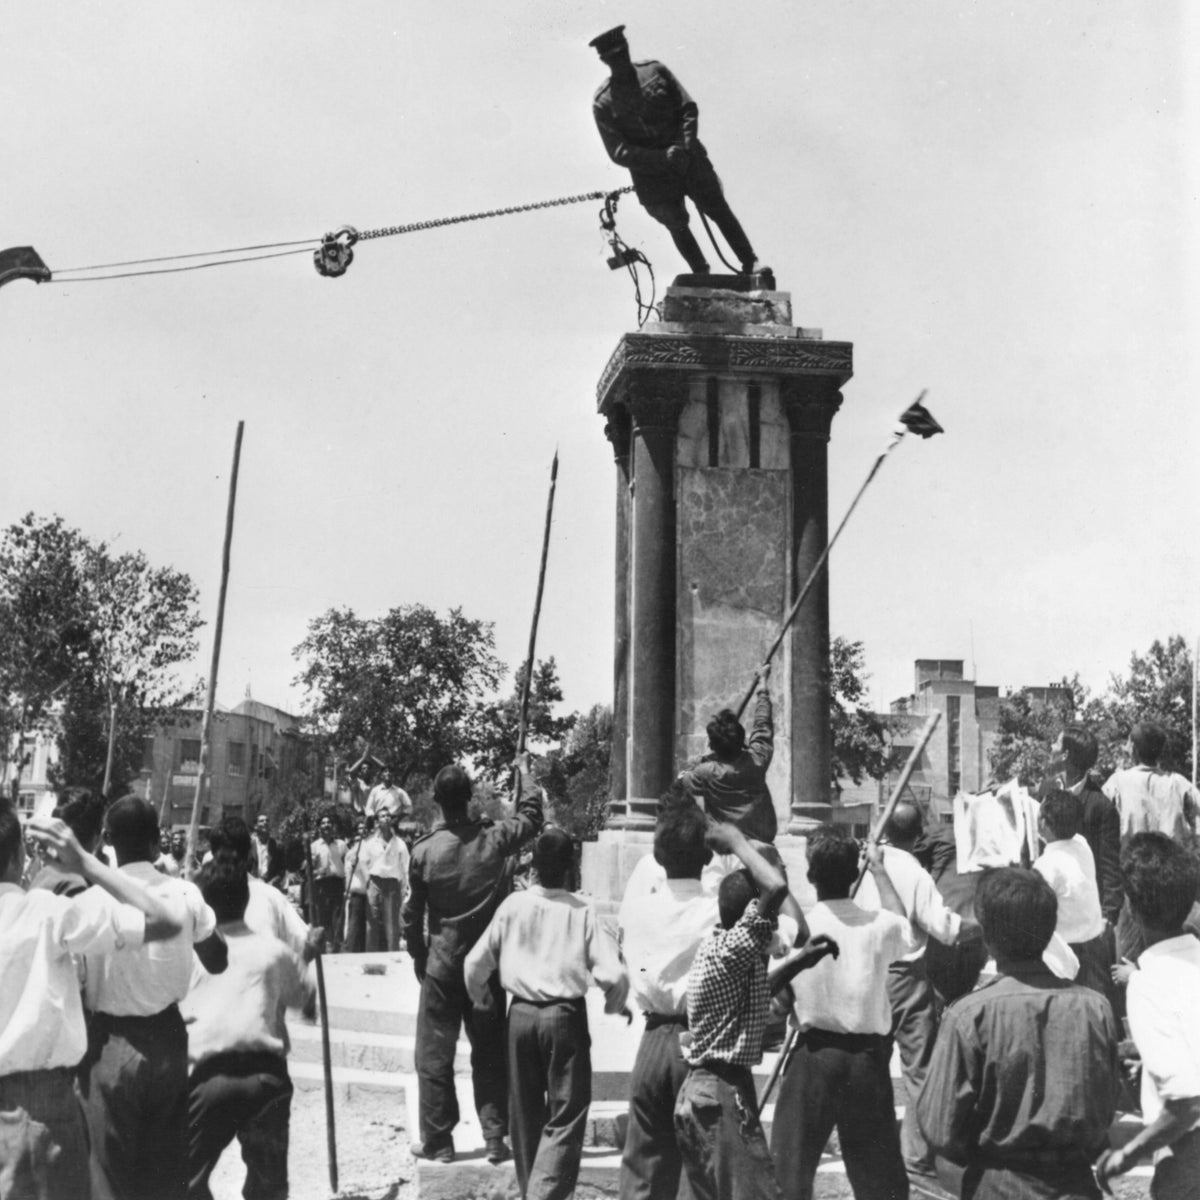 Supporters of then-Prime Minister Mohammad Mossadegh, armed with long sticks, tearing down a statue of the Shah of Iran's father, in Tehran, August 17, 1953. Two days later, Mossadegh was overthrown.